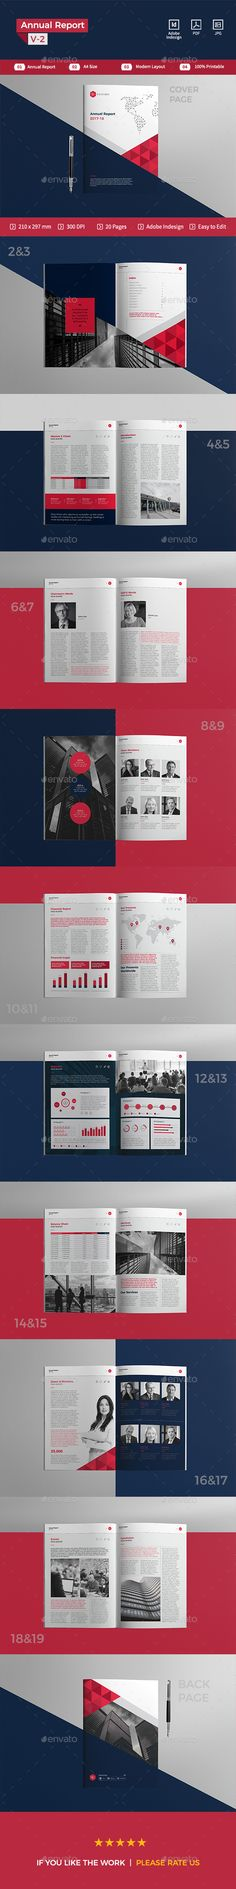 216 best Annual Report Template Design images on Pinterest